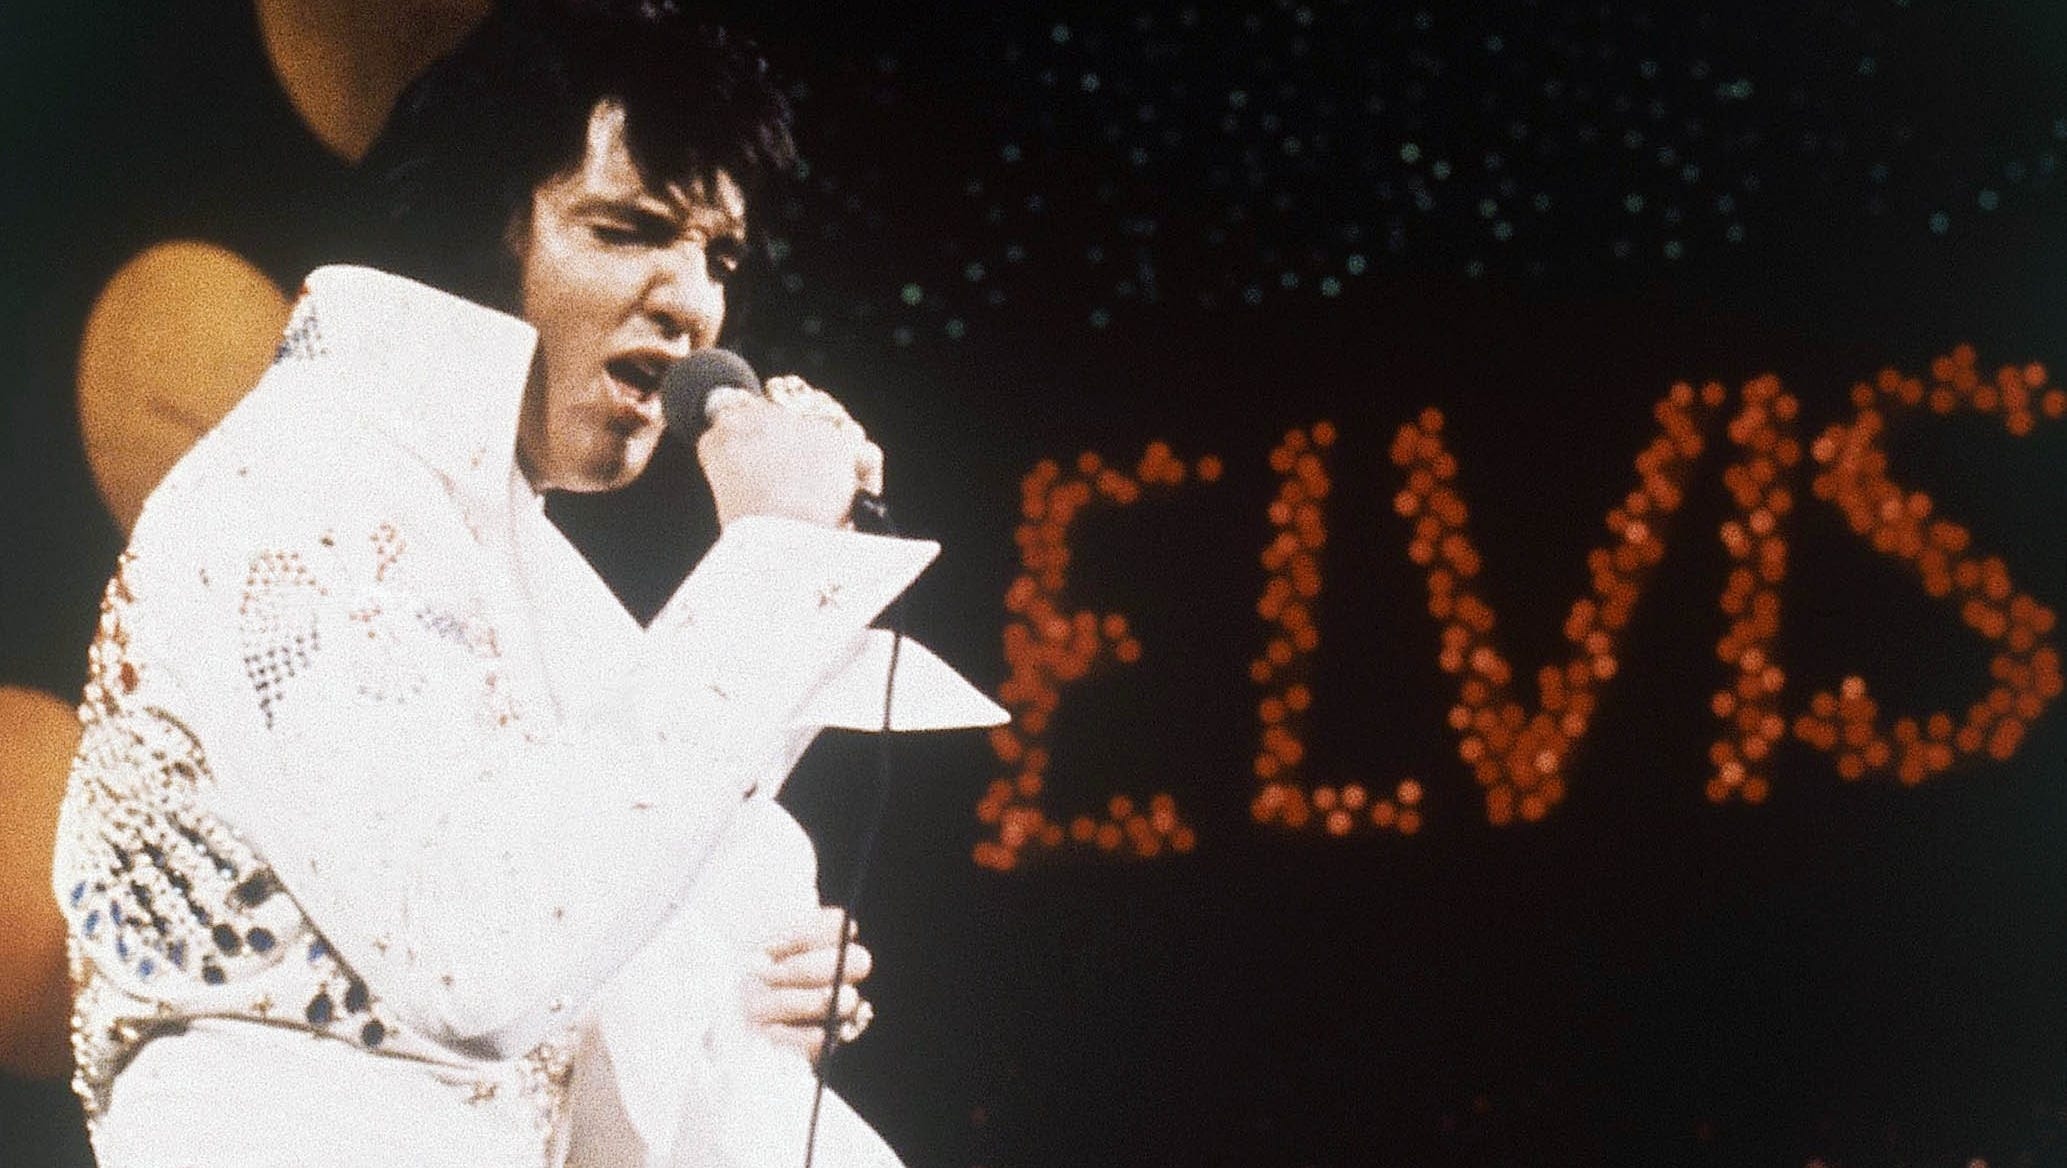 Elvis Presley earned the title King of Rock 'n' Roll by stacking up impressive career numbers on the charts and in record sales, and he remains one of the greatest hitmakers of all time. USA TODAY's Steve Jones does the math.